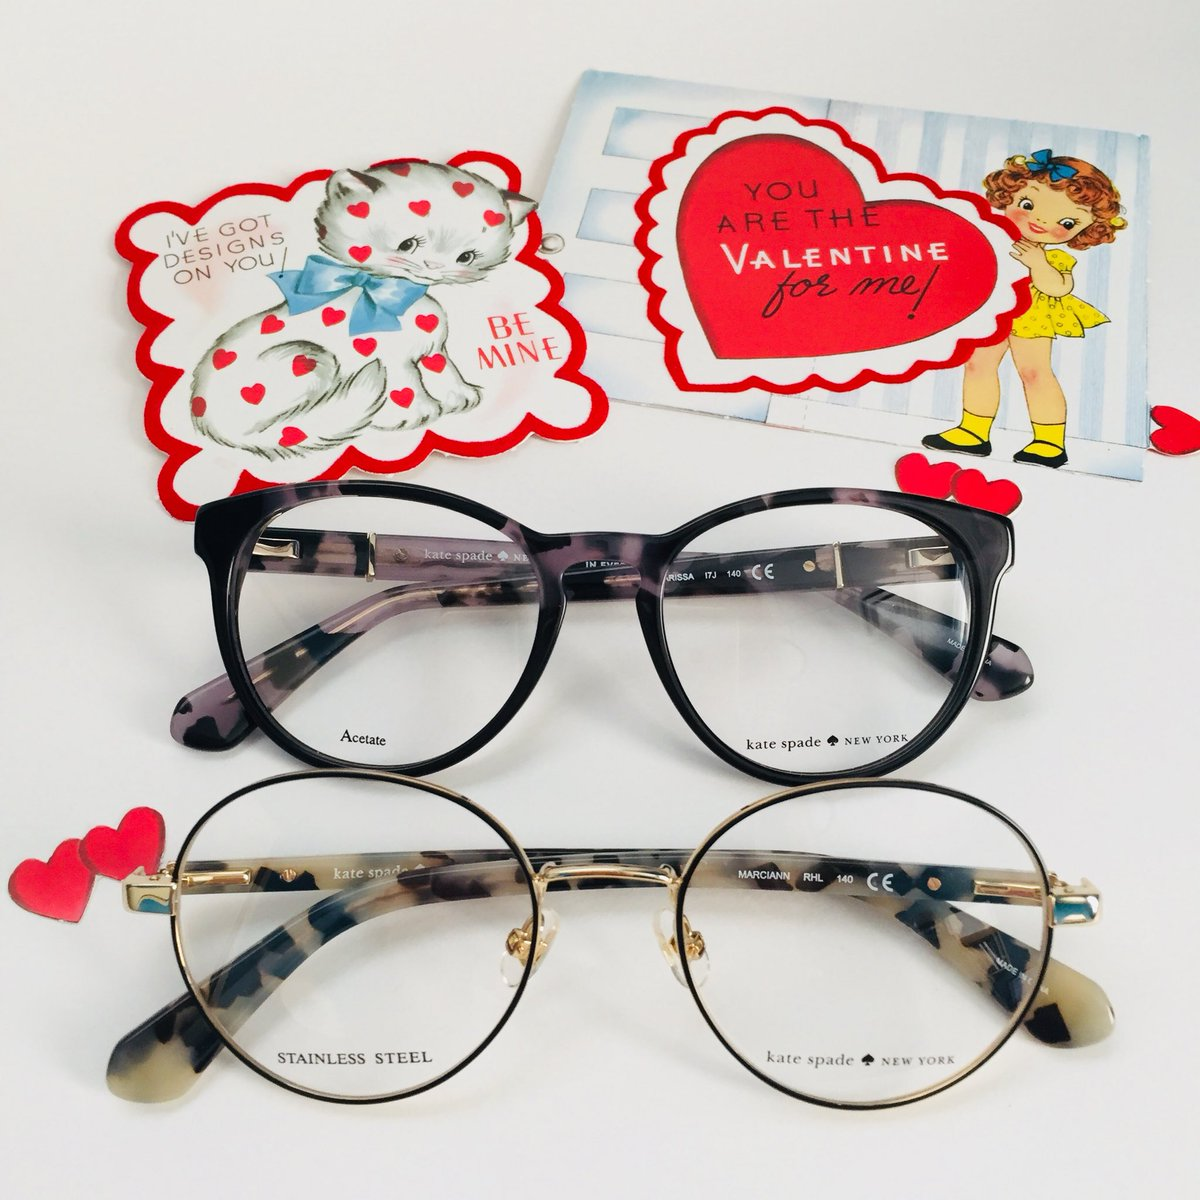 c922a838fa4 Fall in love again...with wearing glasses. Round and feminine from Kate